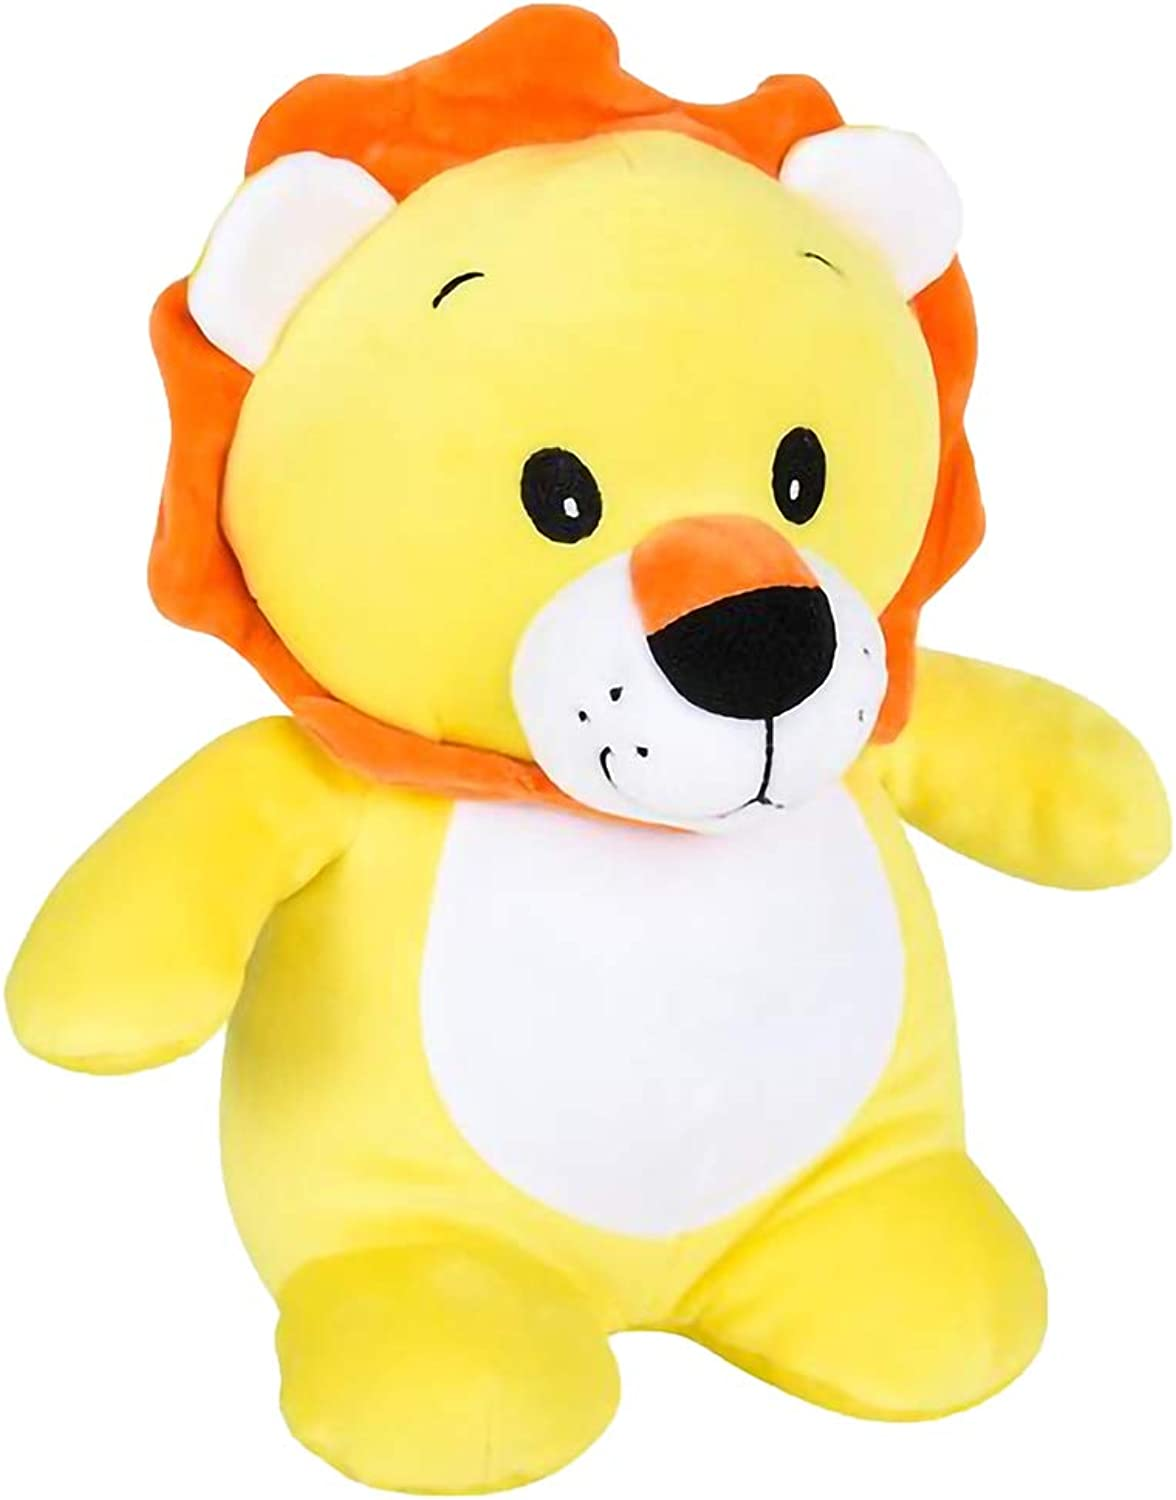 ArtCreativity Lennon The Lion   12  Plush Stuffed Animal   Super Soft and Cuddly Baby Toy   Cute Nursery Decor for Kids   Best Gift for Baby Shower, Boys, Girls, Newborn, Infant, Toddler